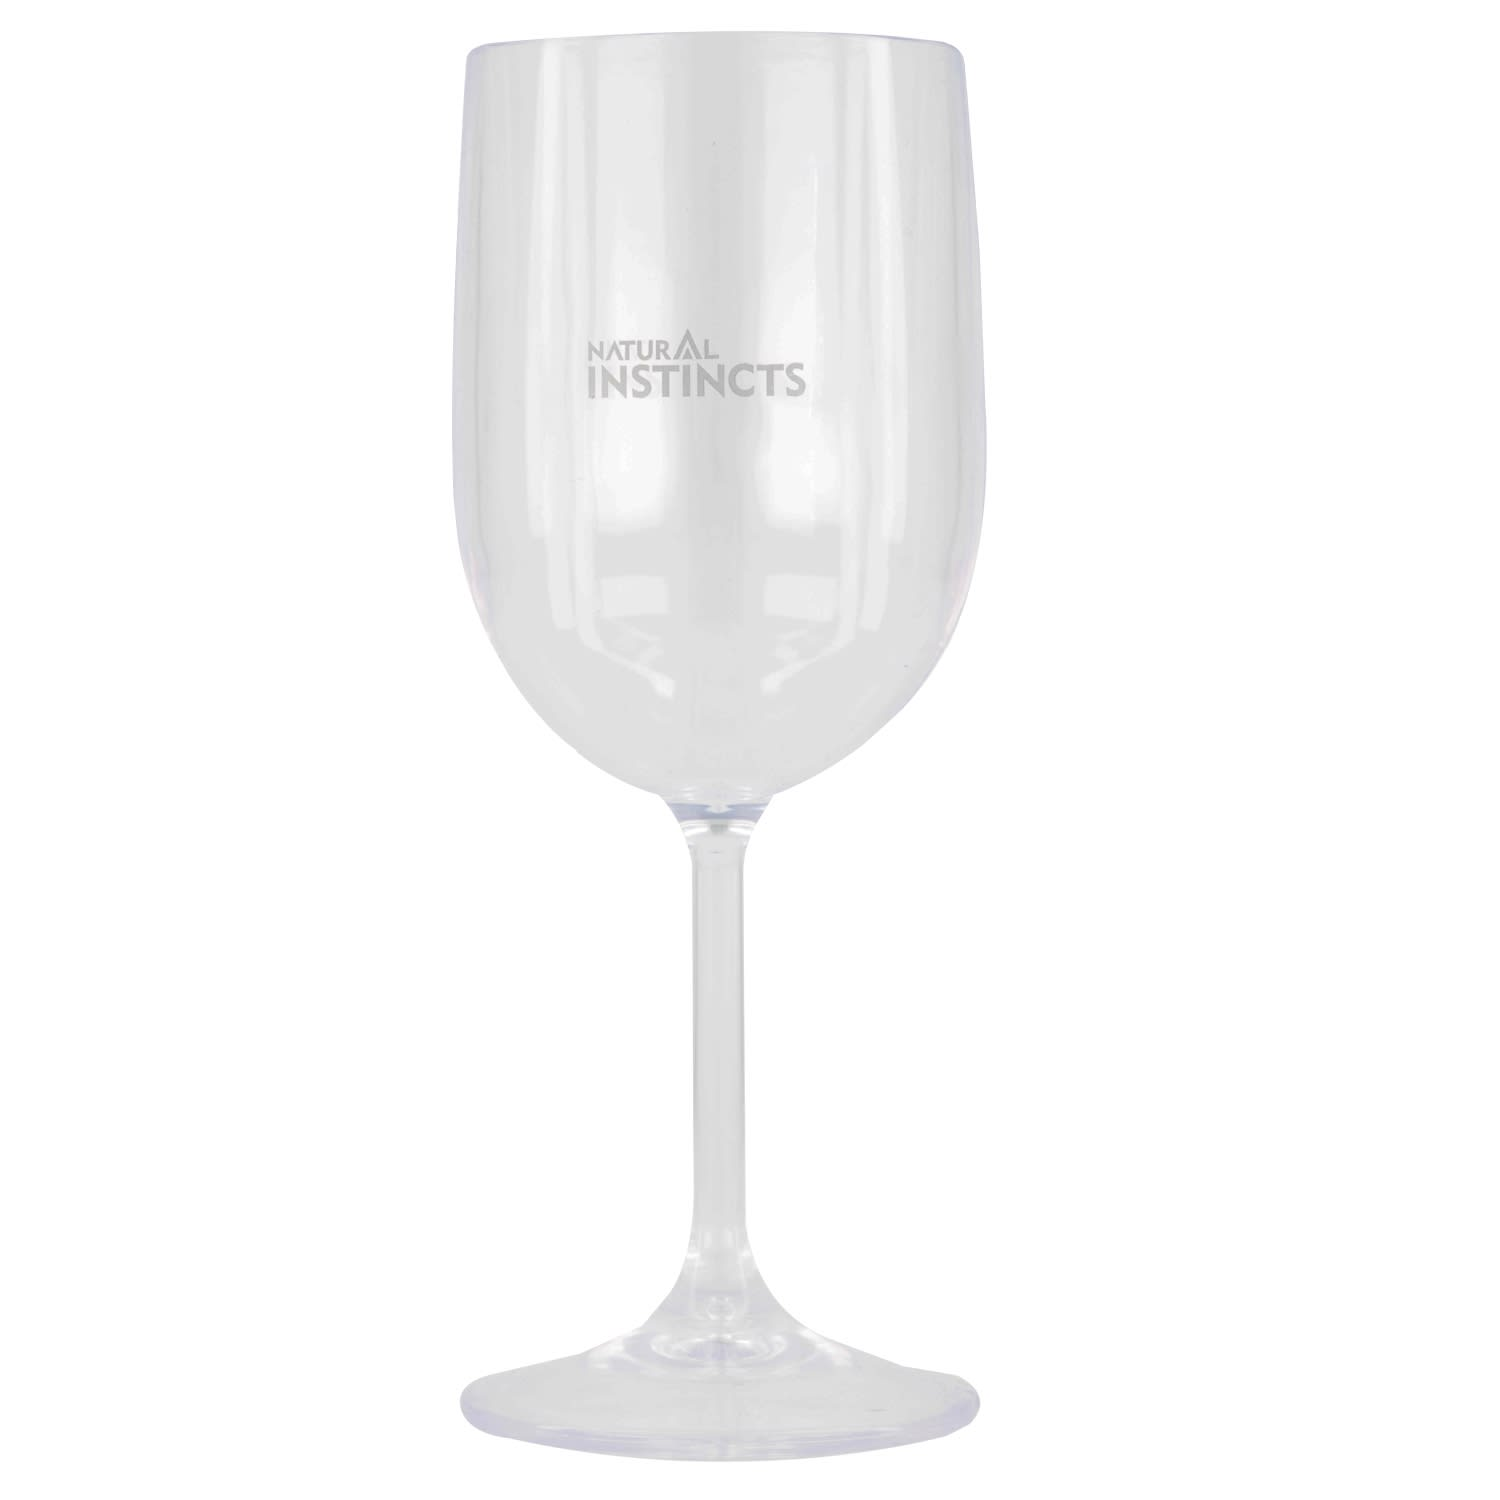 Natural Instincts Wine Glass